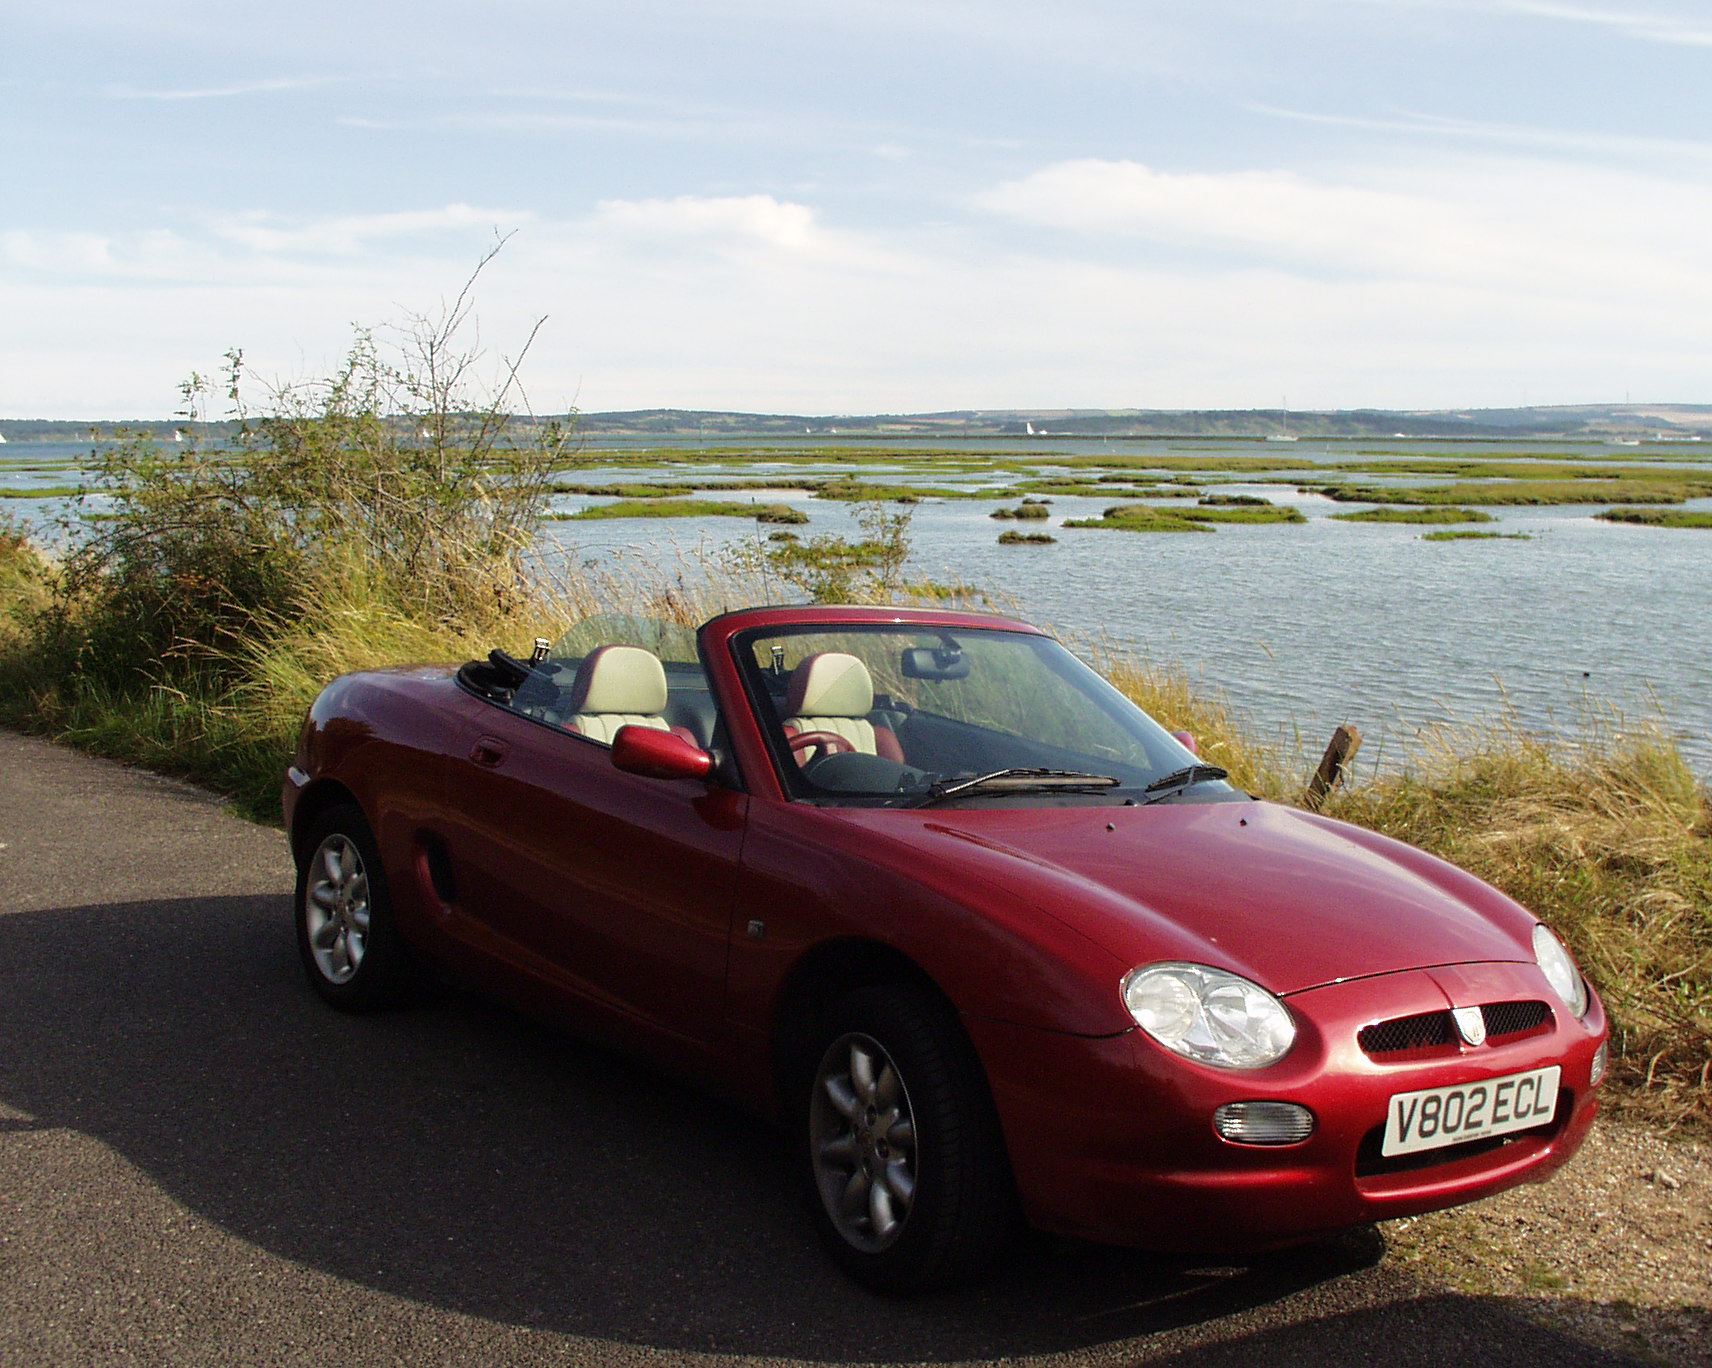 2000-08-19 MGF road trip to Lepe Beach